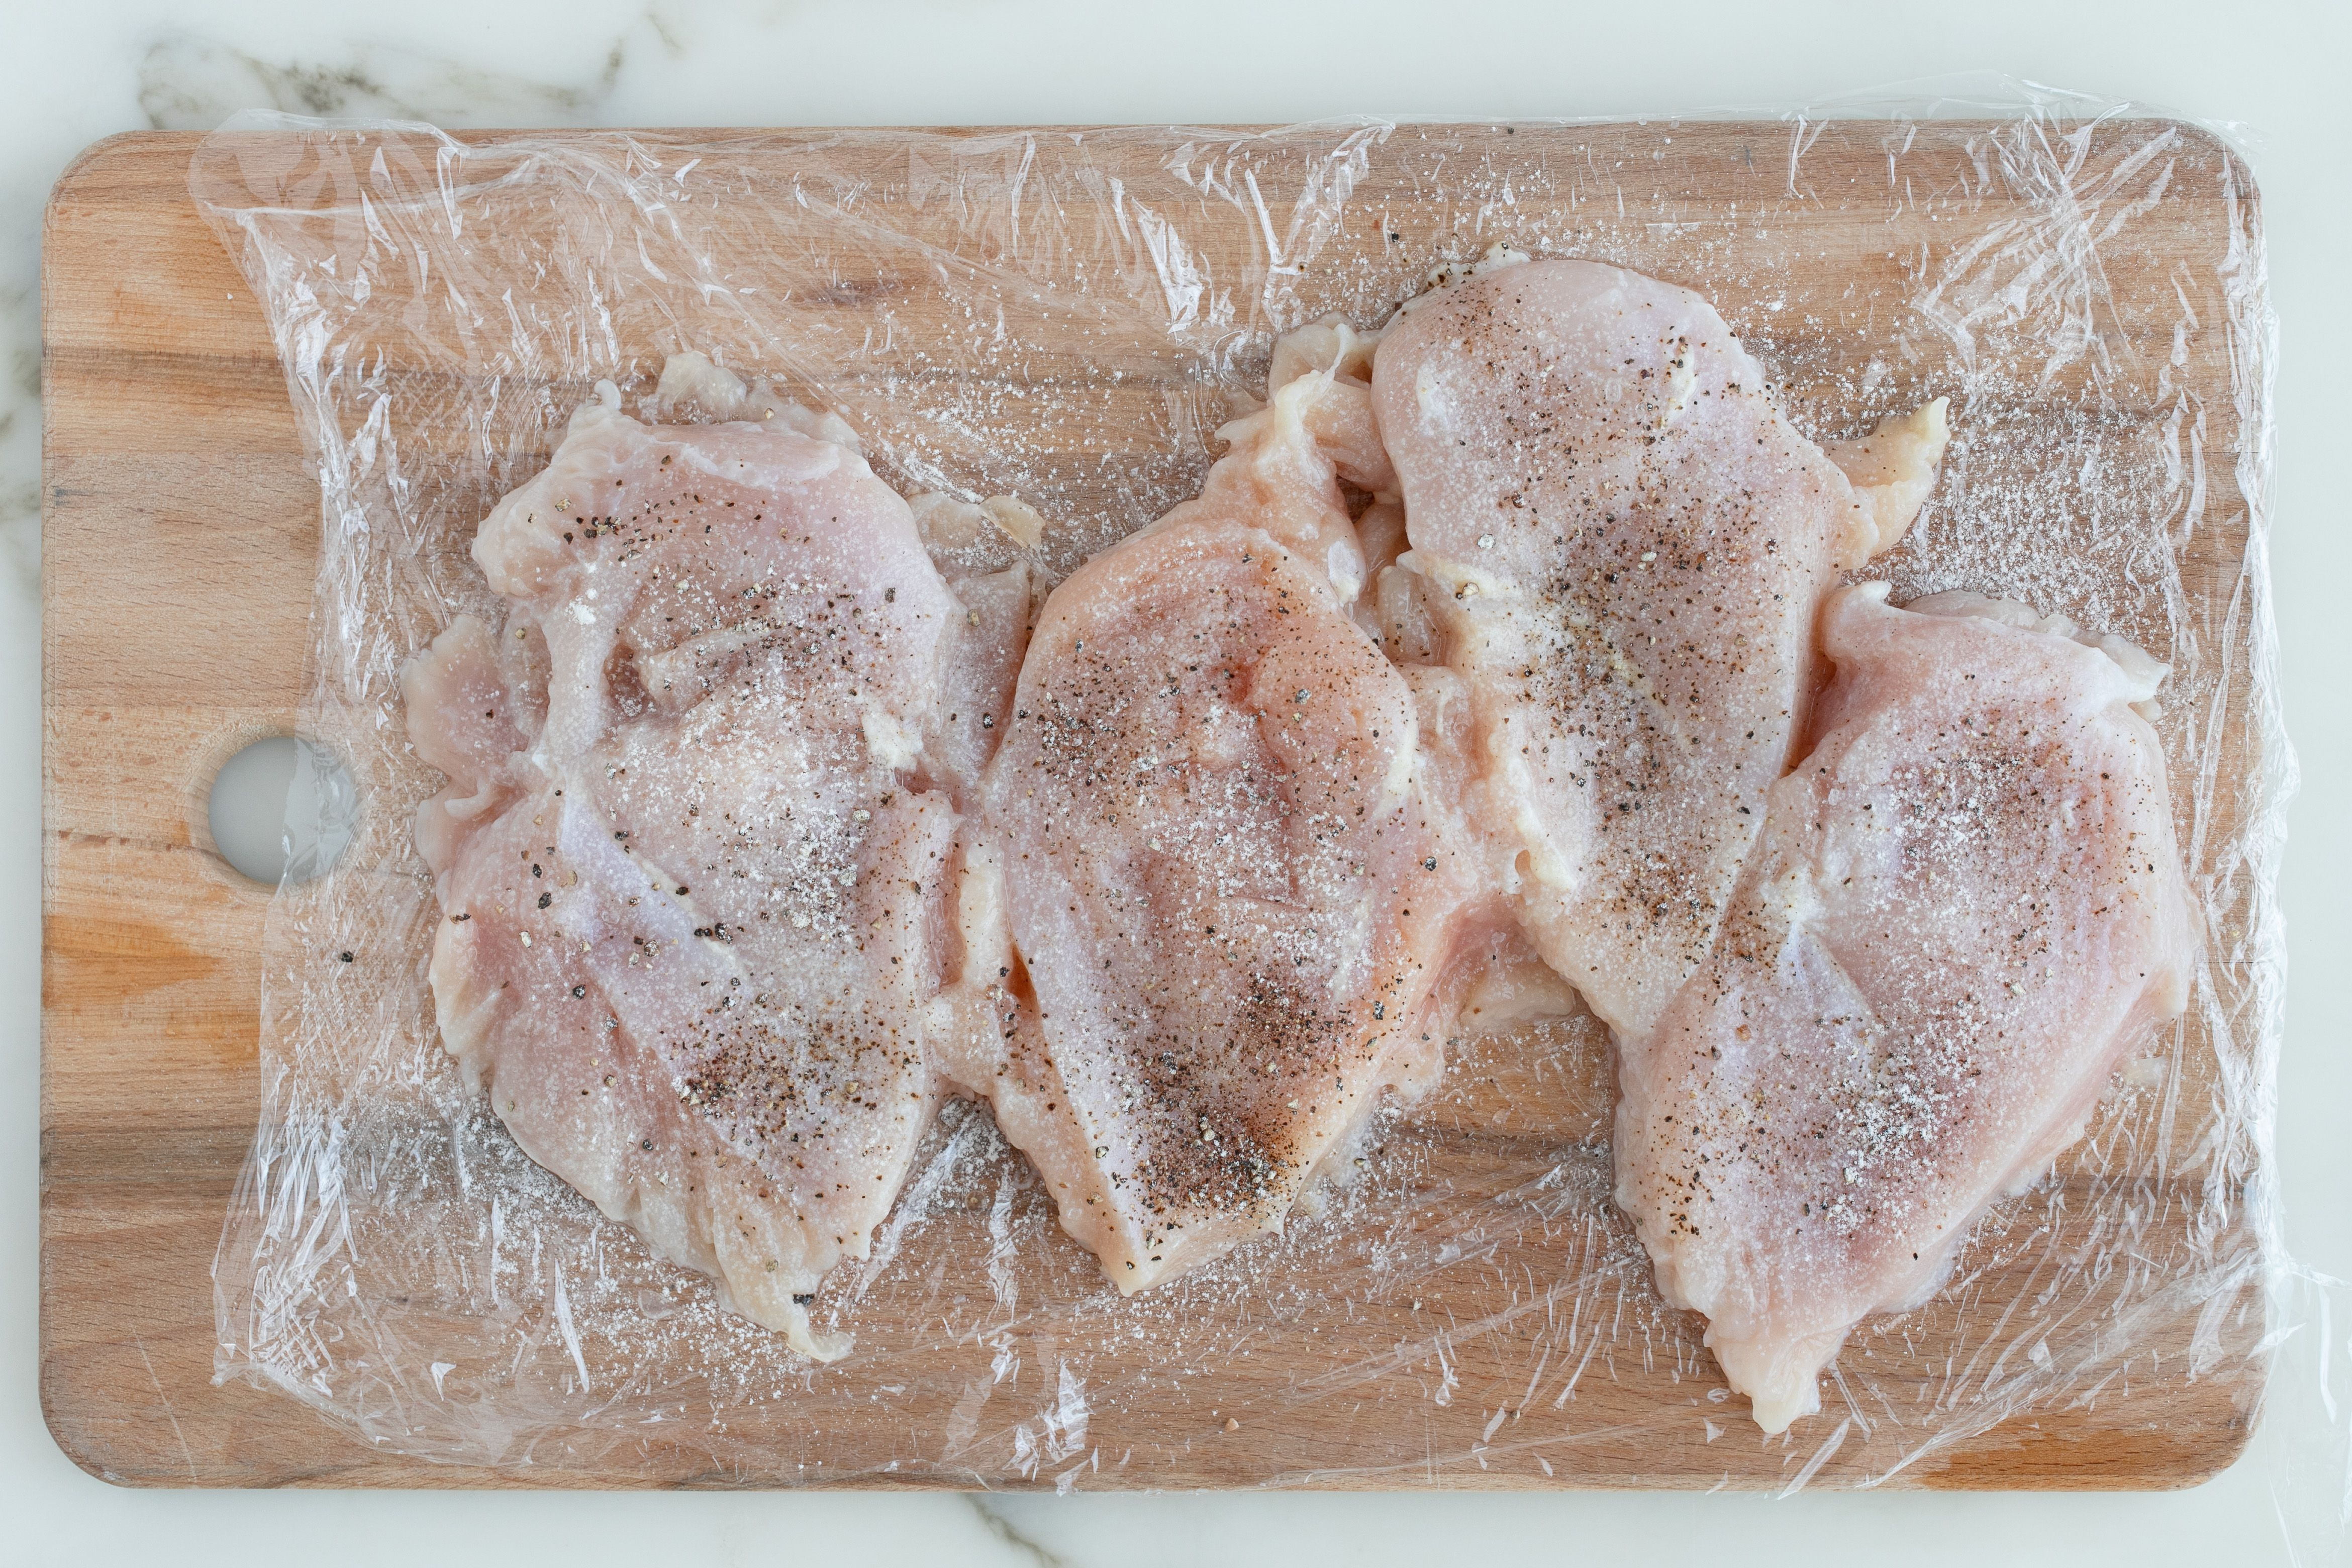 Chicken dusted with salt and pepper